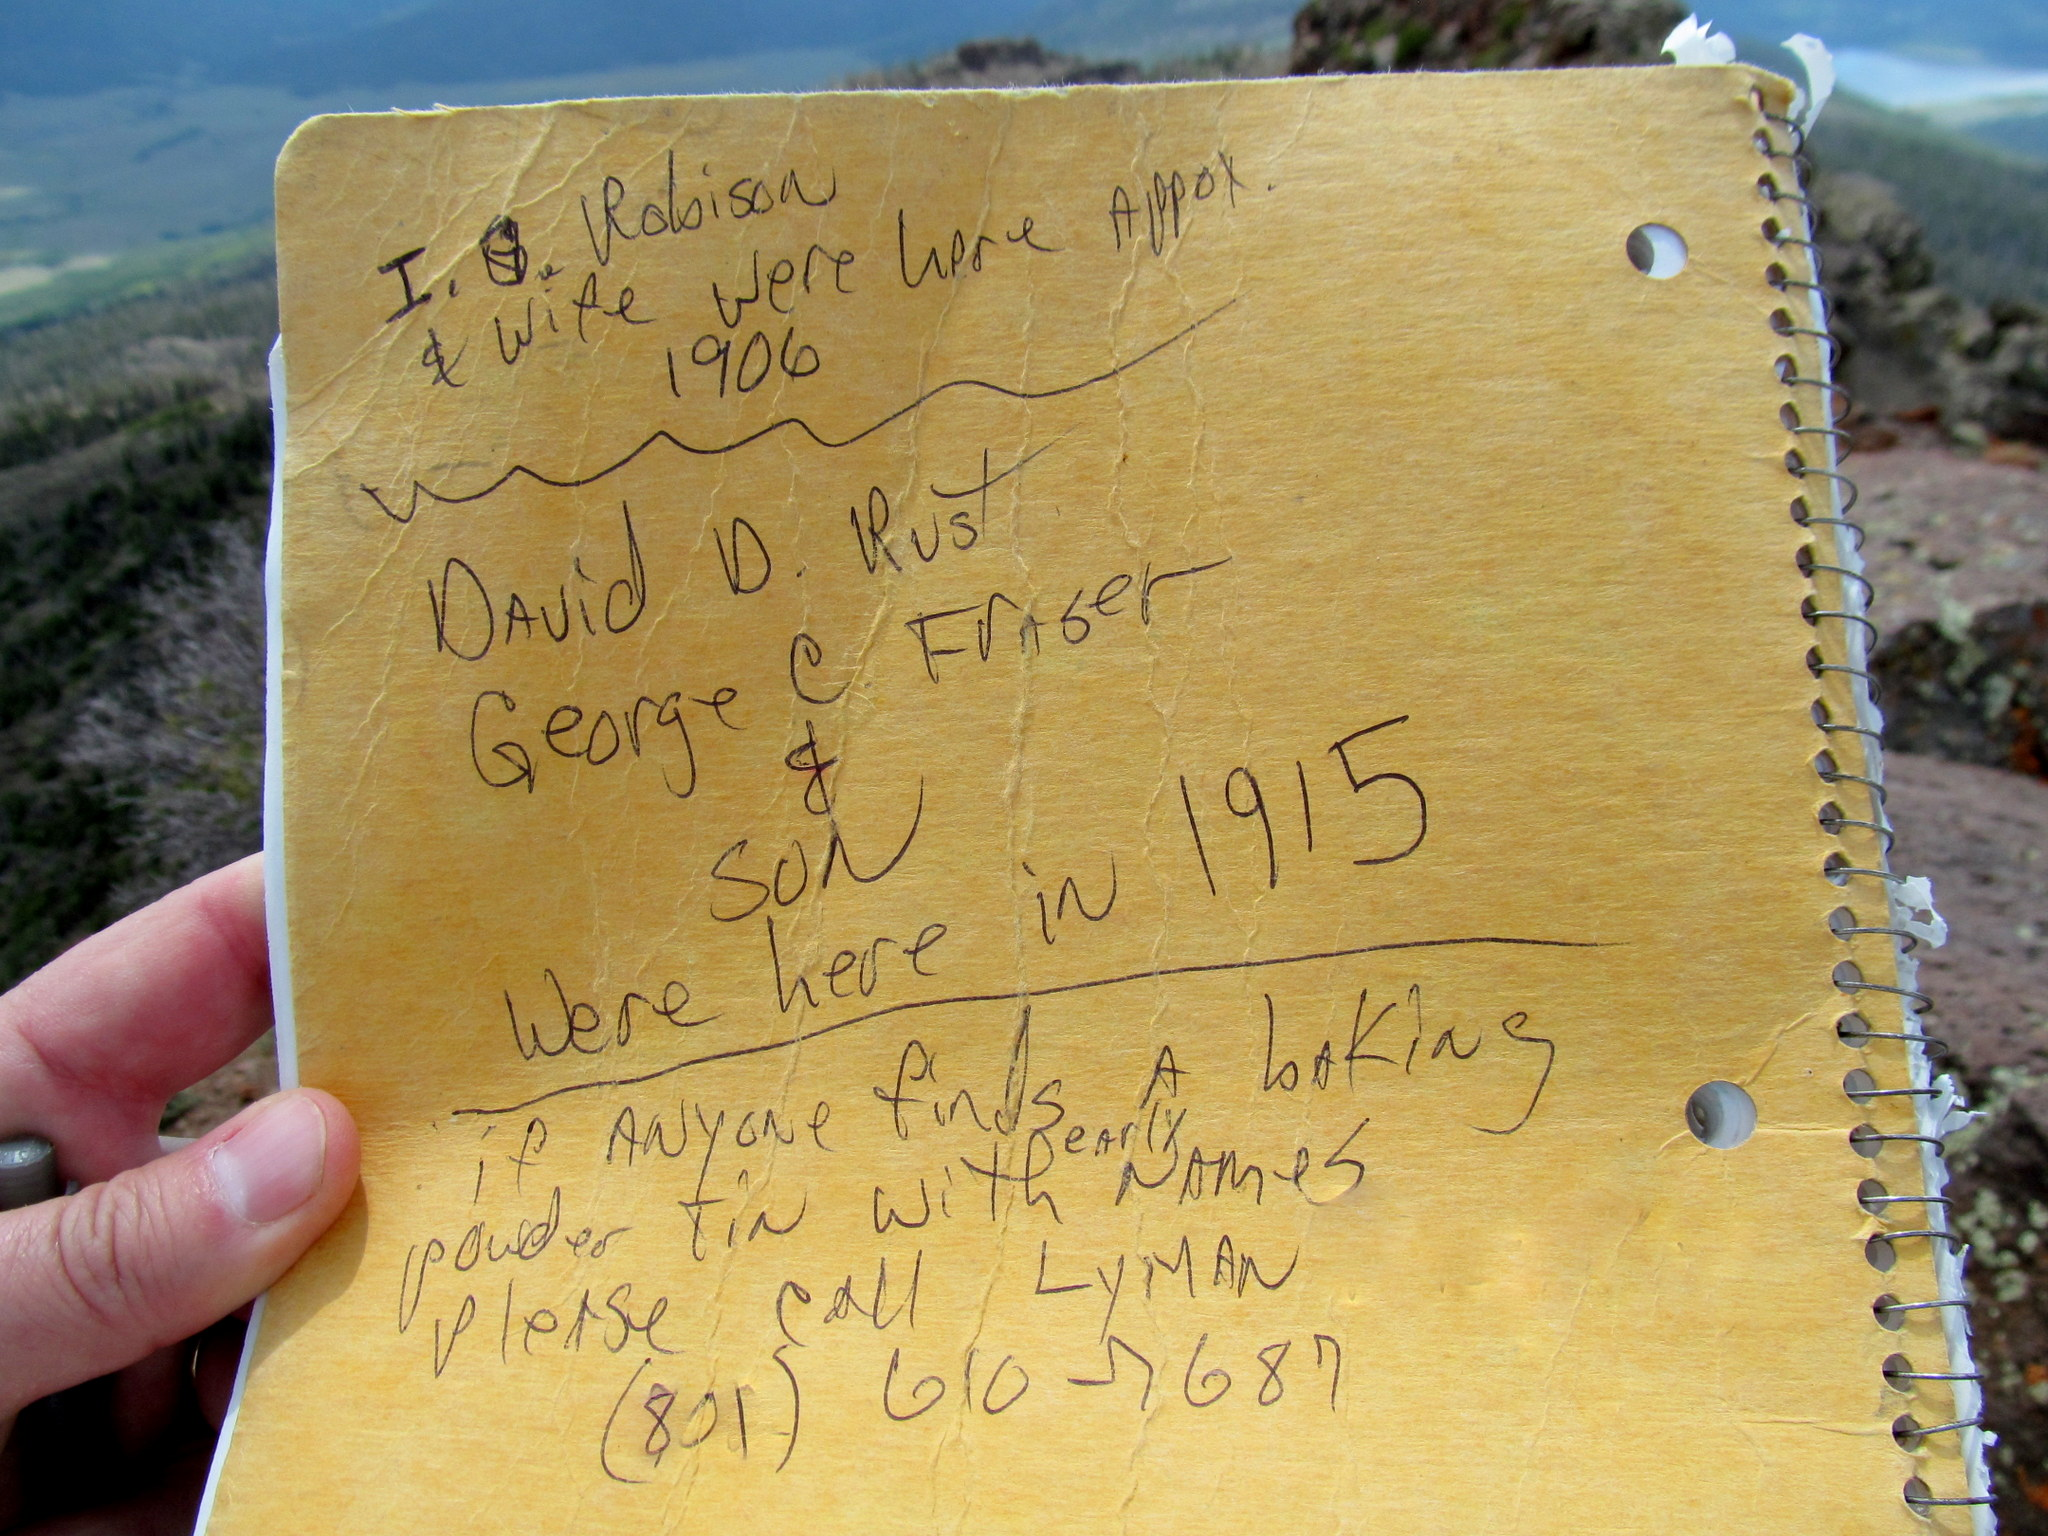 Photo: Lyman's note